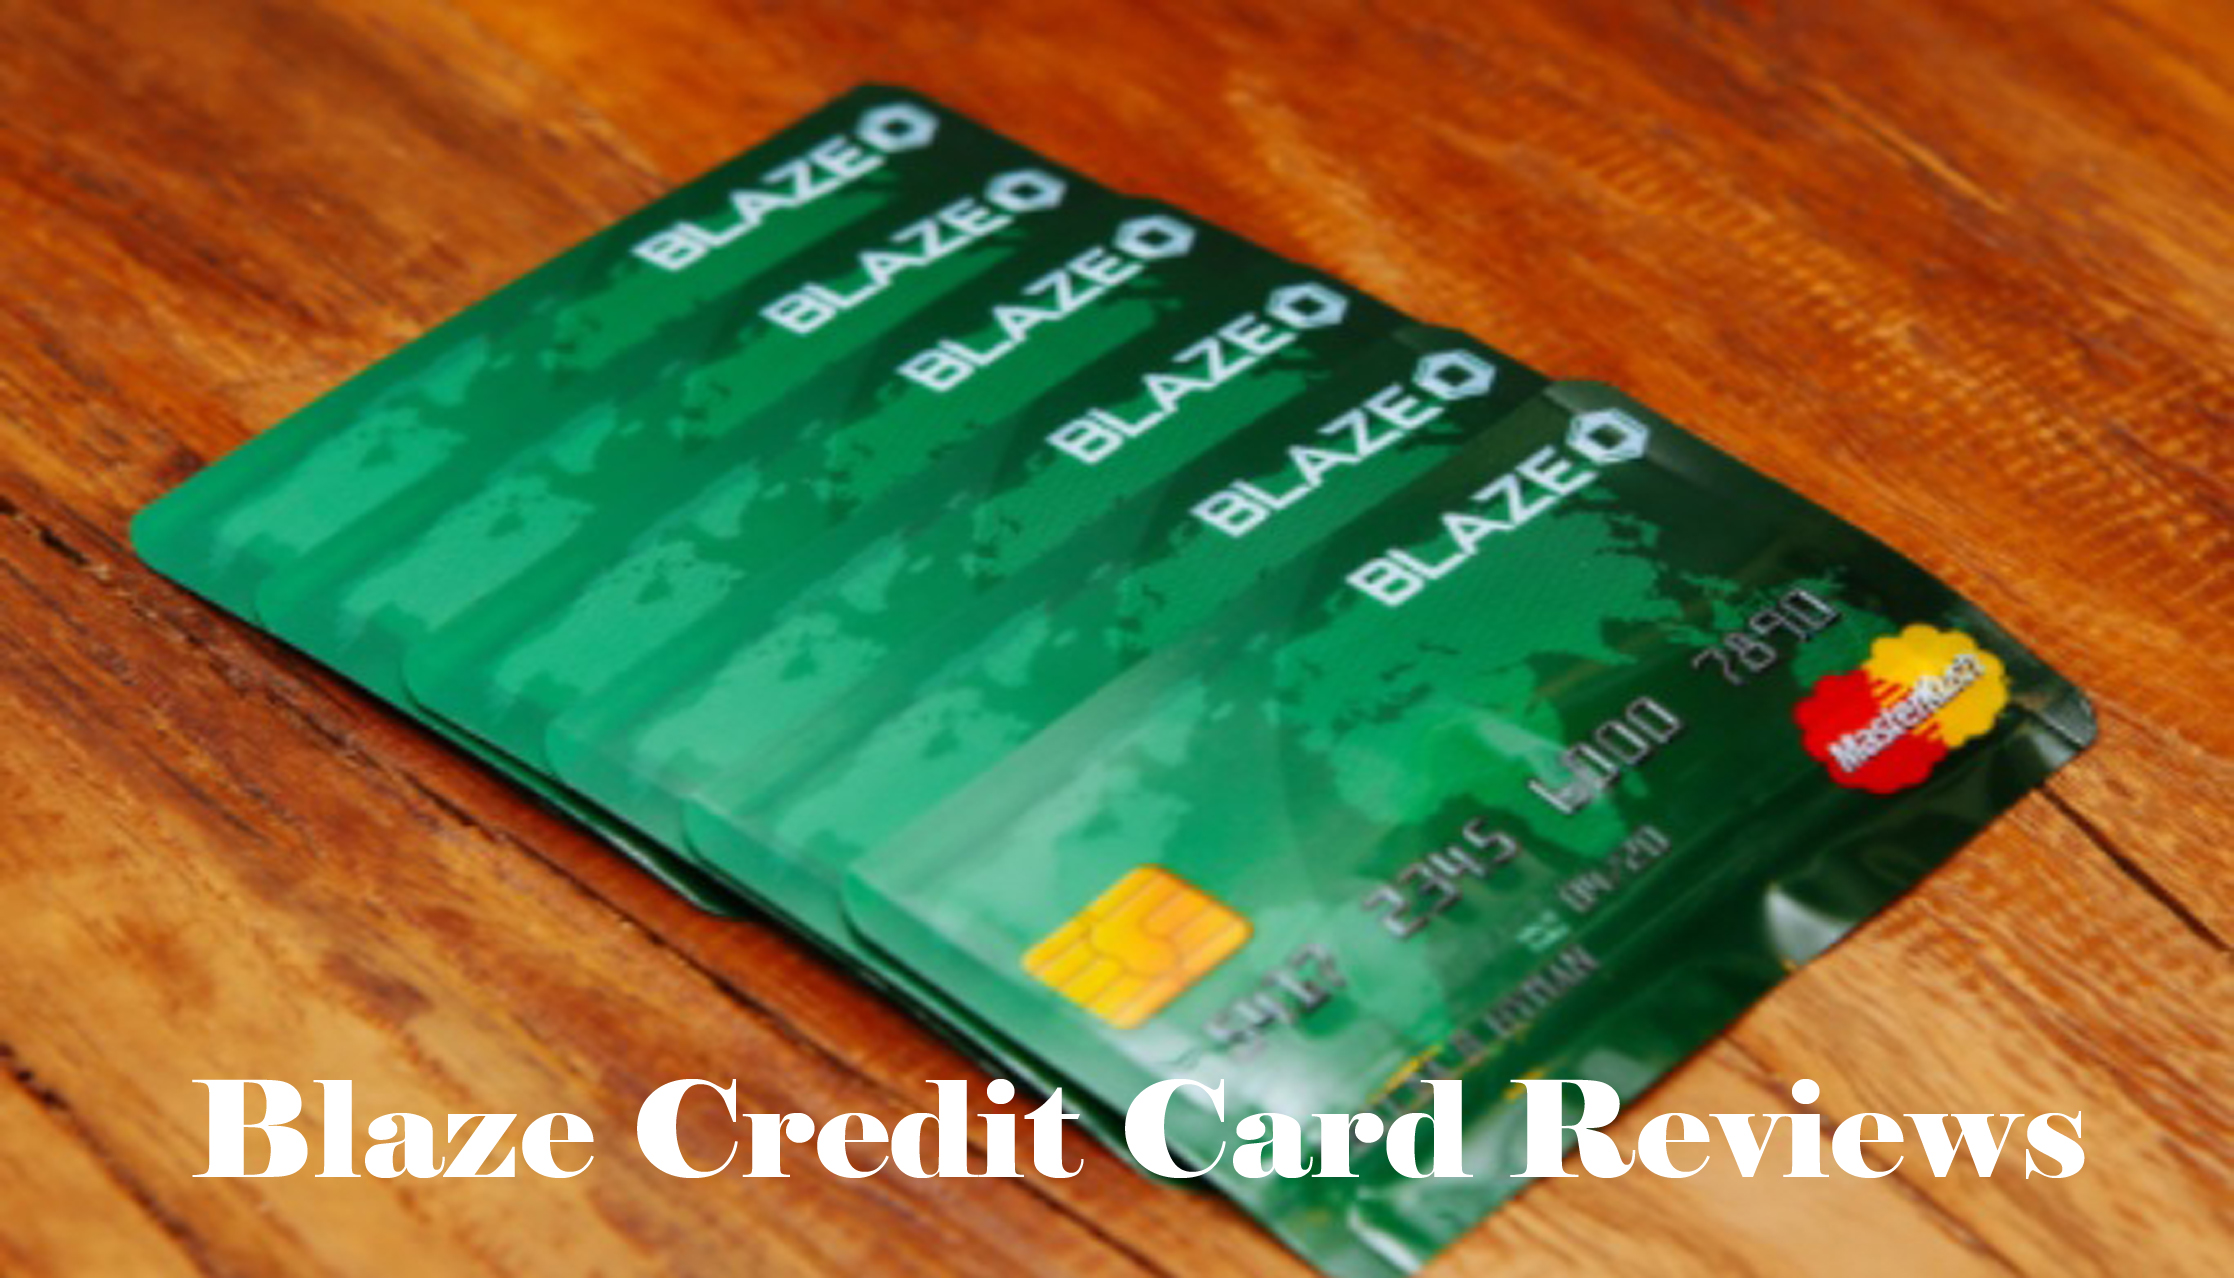 Blaze Credit Card Reviews - How to Apply for Blaze Credit Card